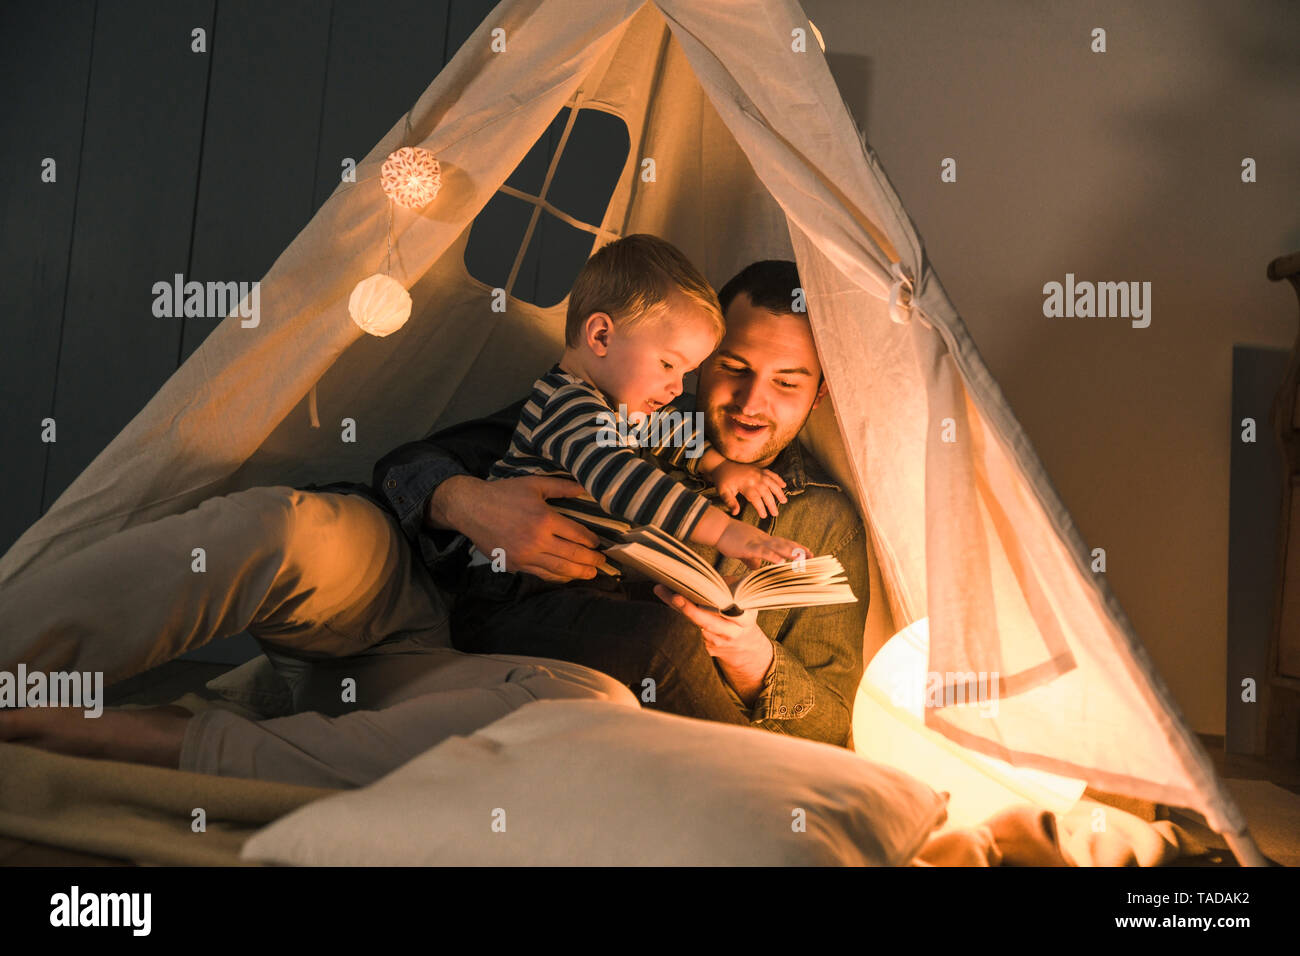 Father reading book to son at an illuminated tent at home - Stock Image